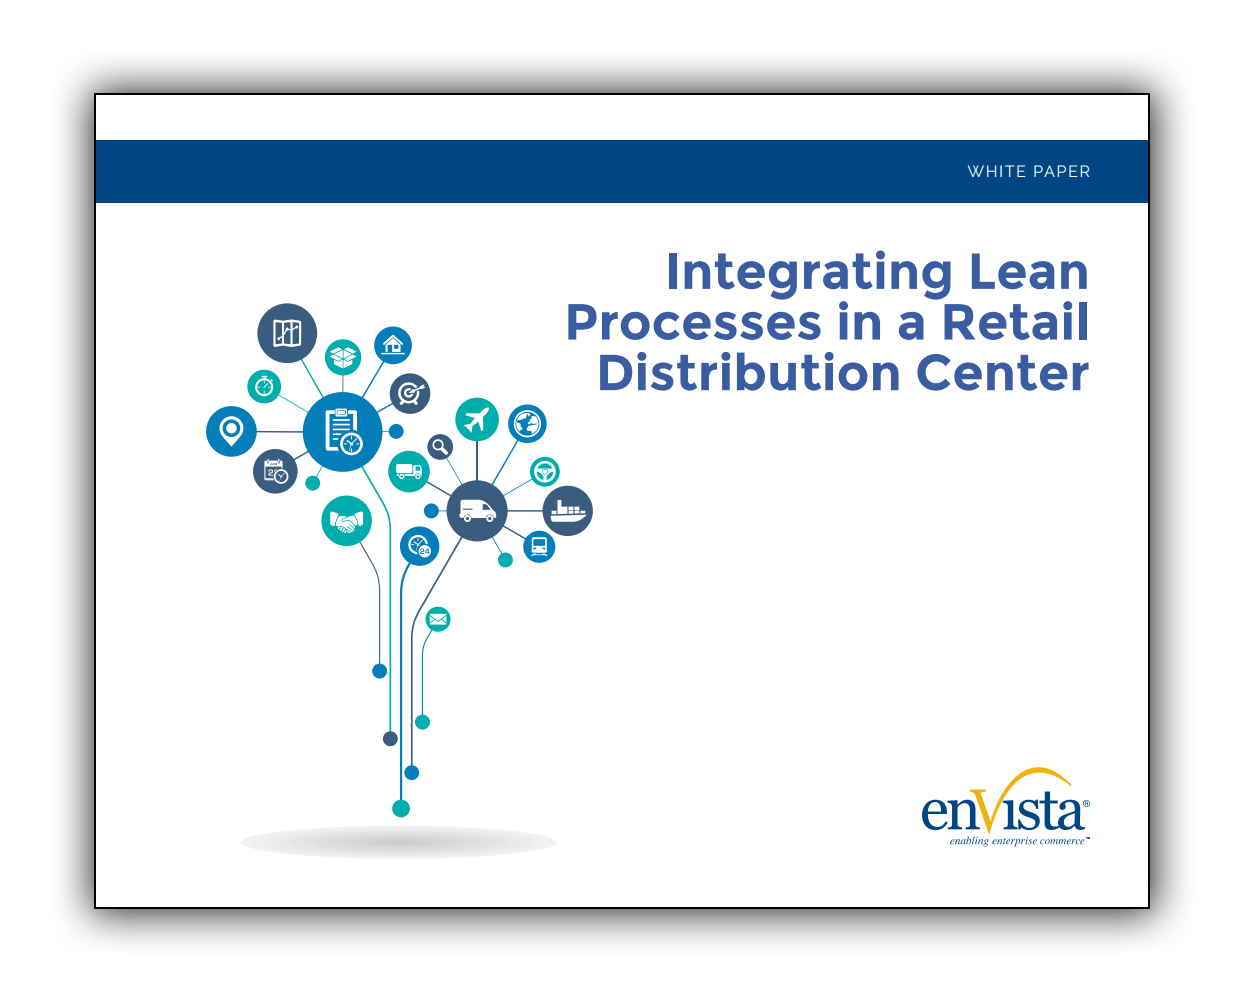 Image_Integrating-lean-process-in-a-retail-distribution-center.png